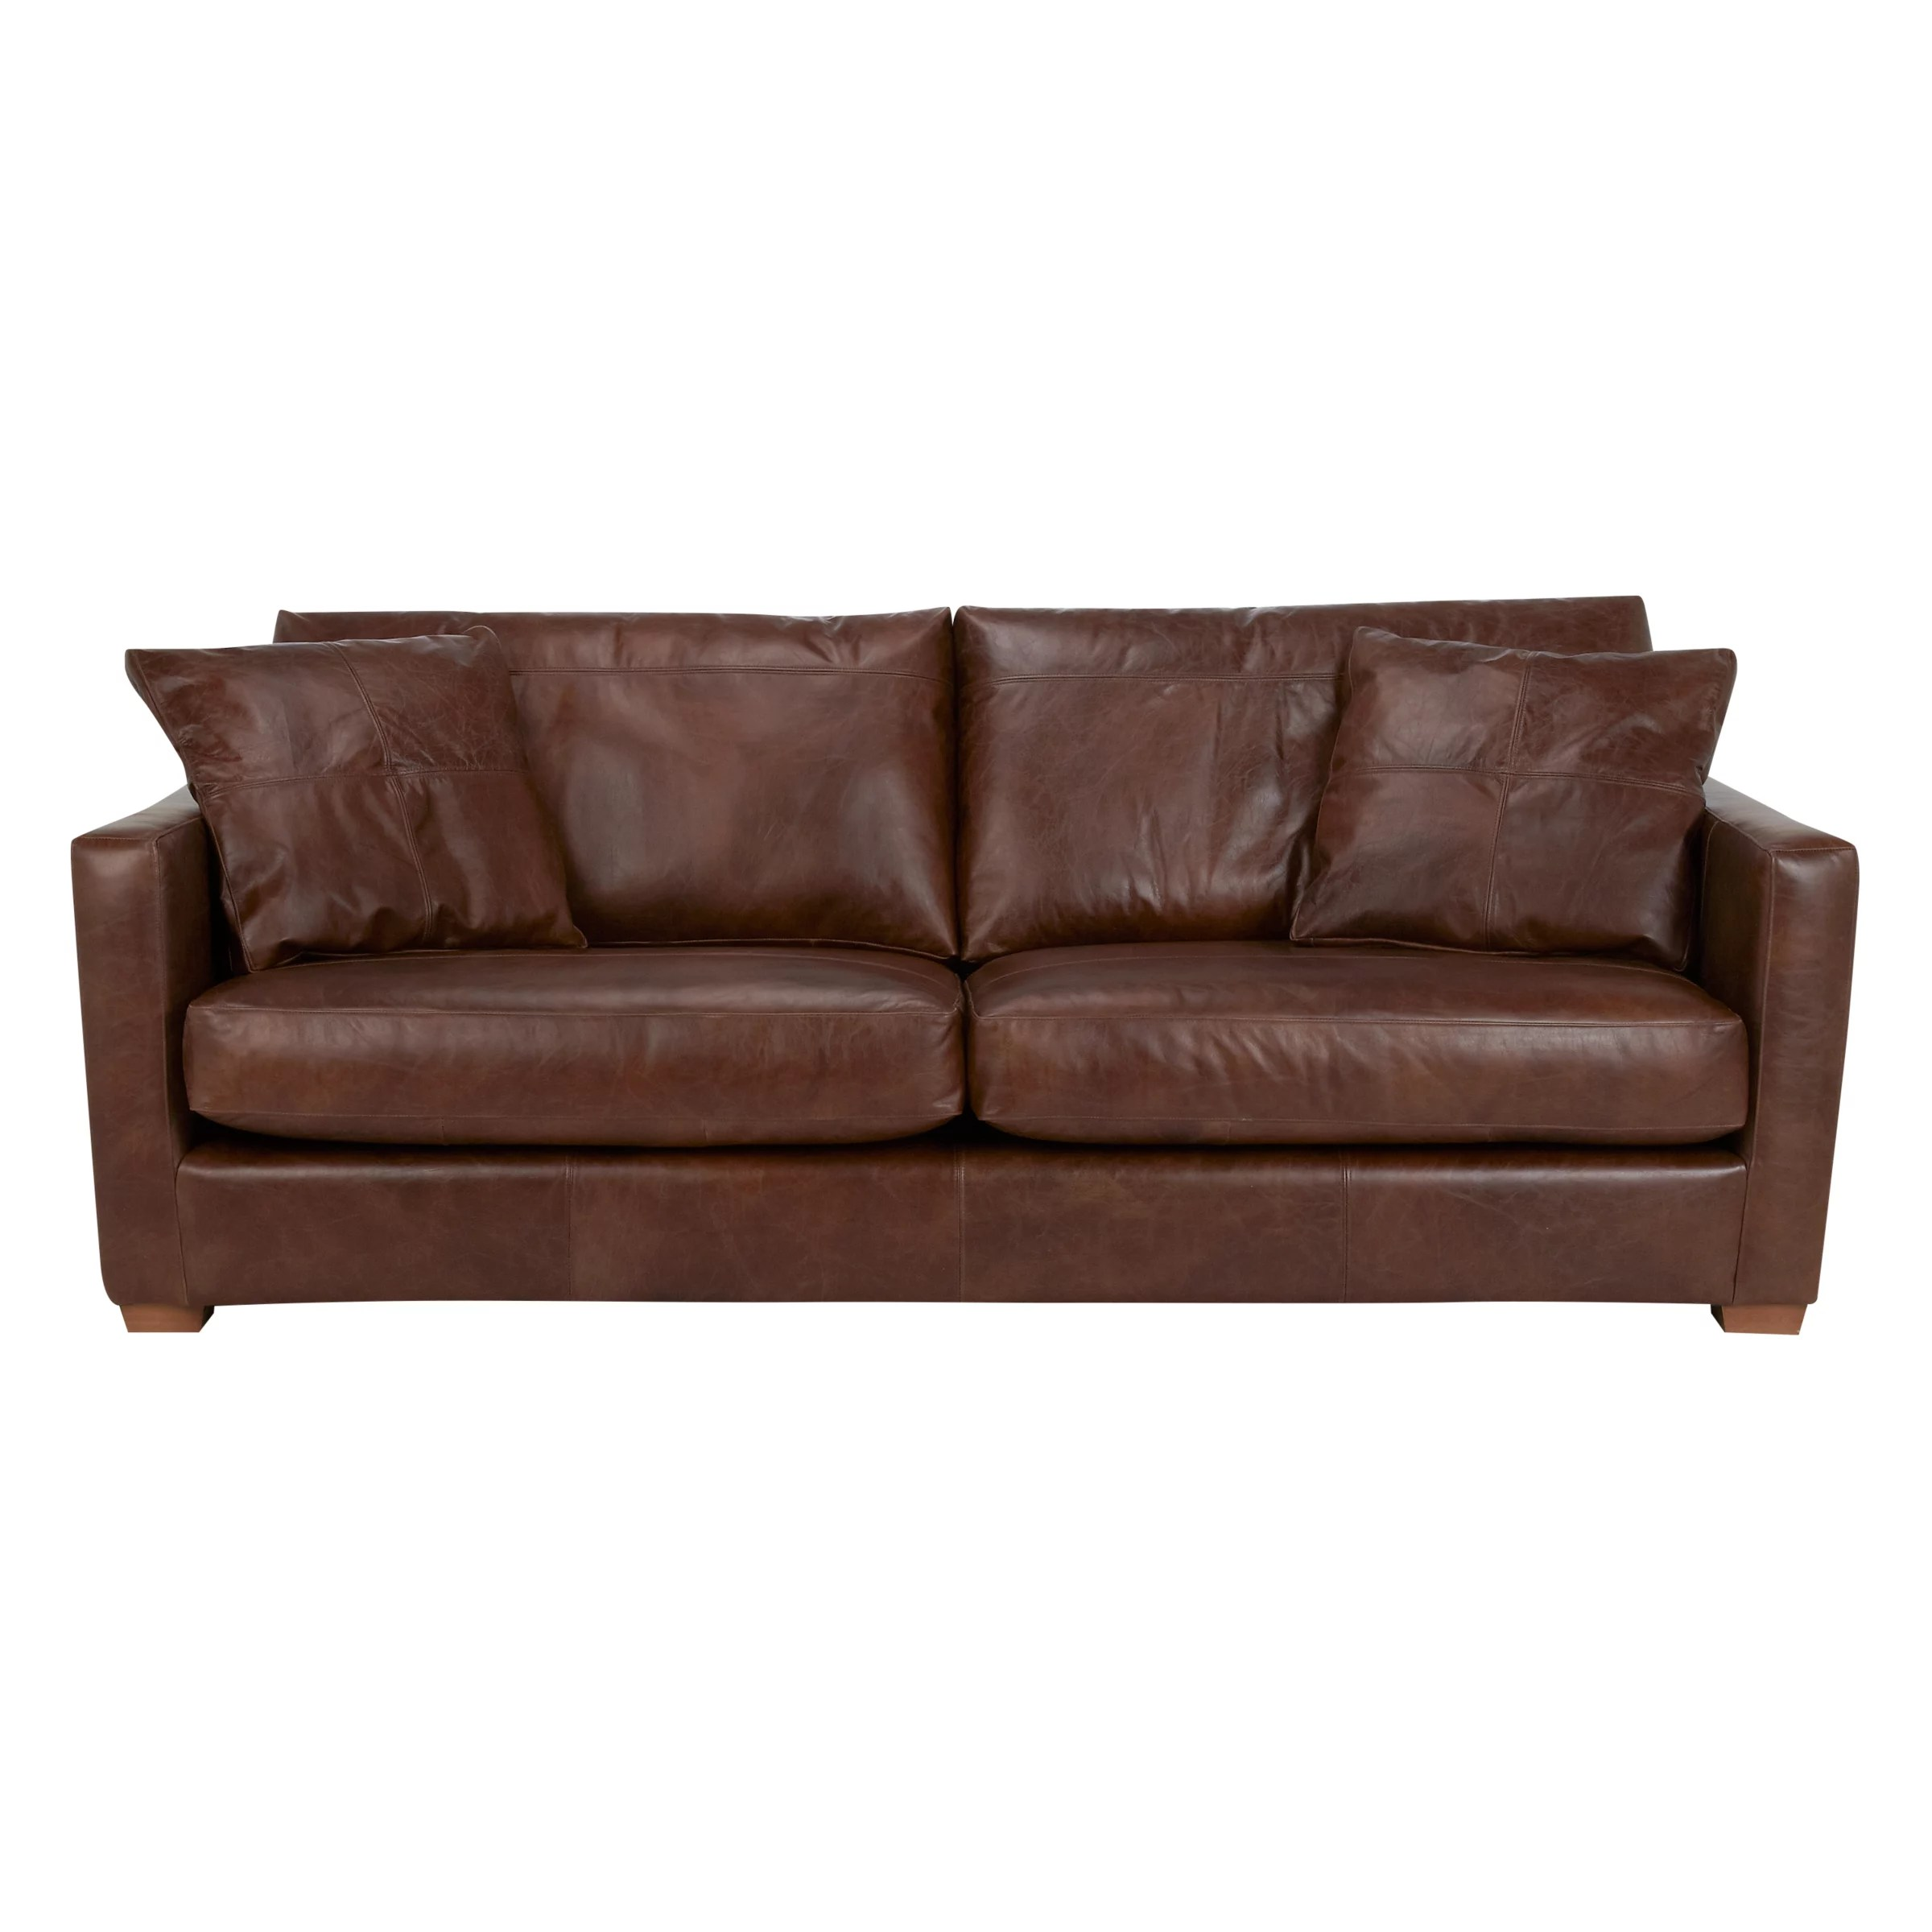 drummond grand leather sofa how tall should a side table be john lewis baxter antique cigar at